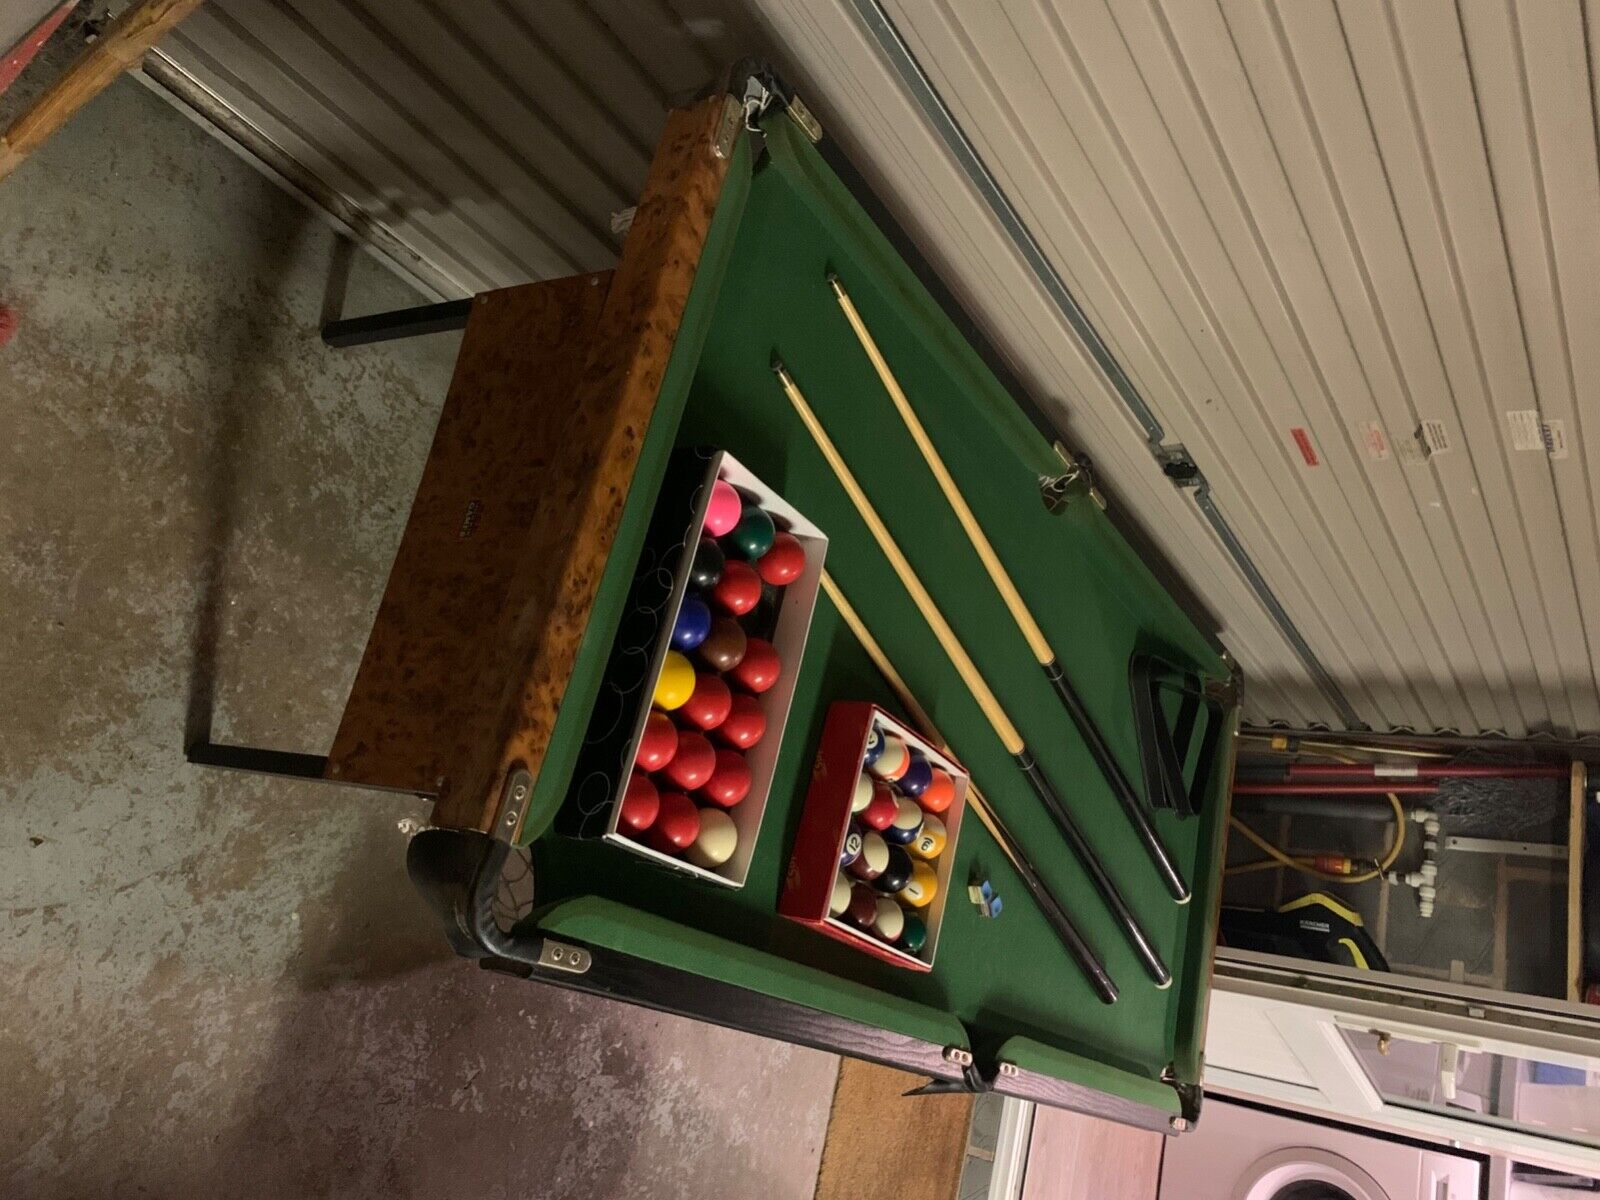 foldable pool/snooker table, 790 mm x 1540 x 820 high